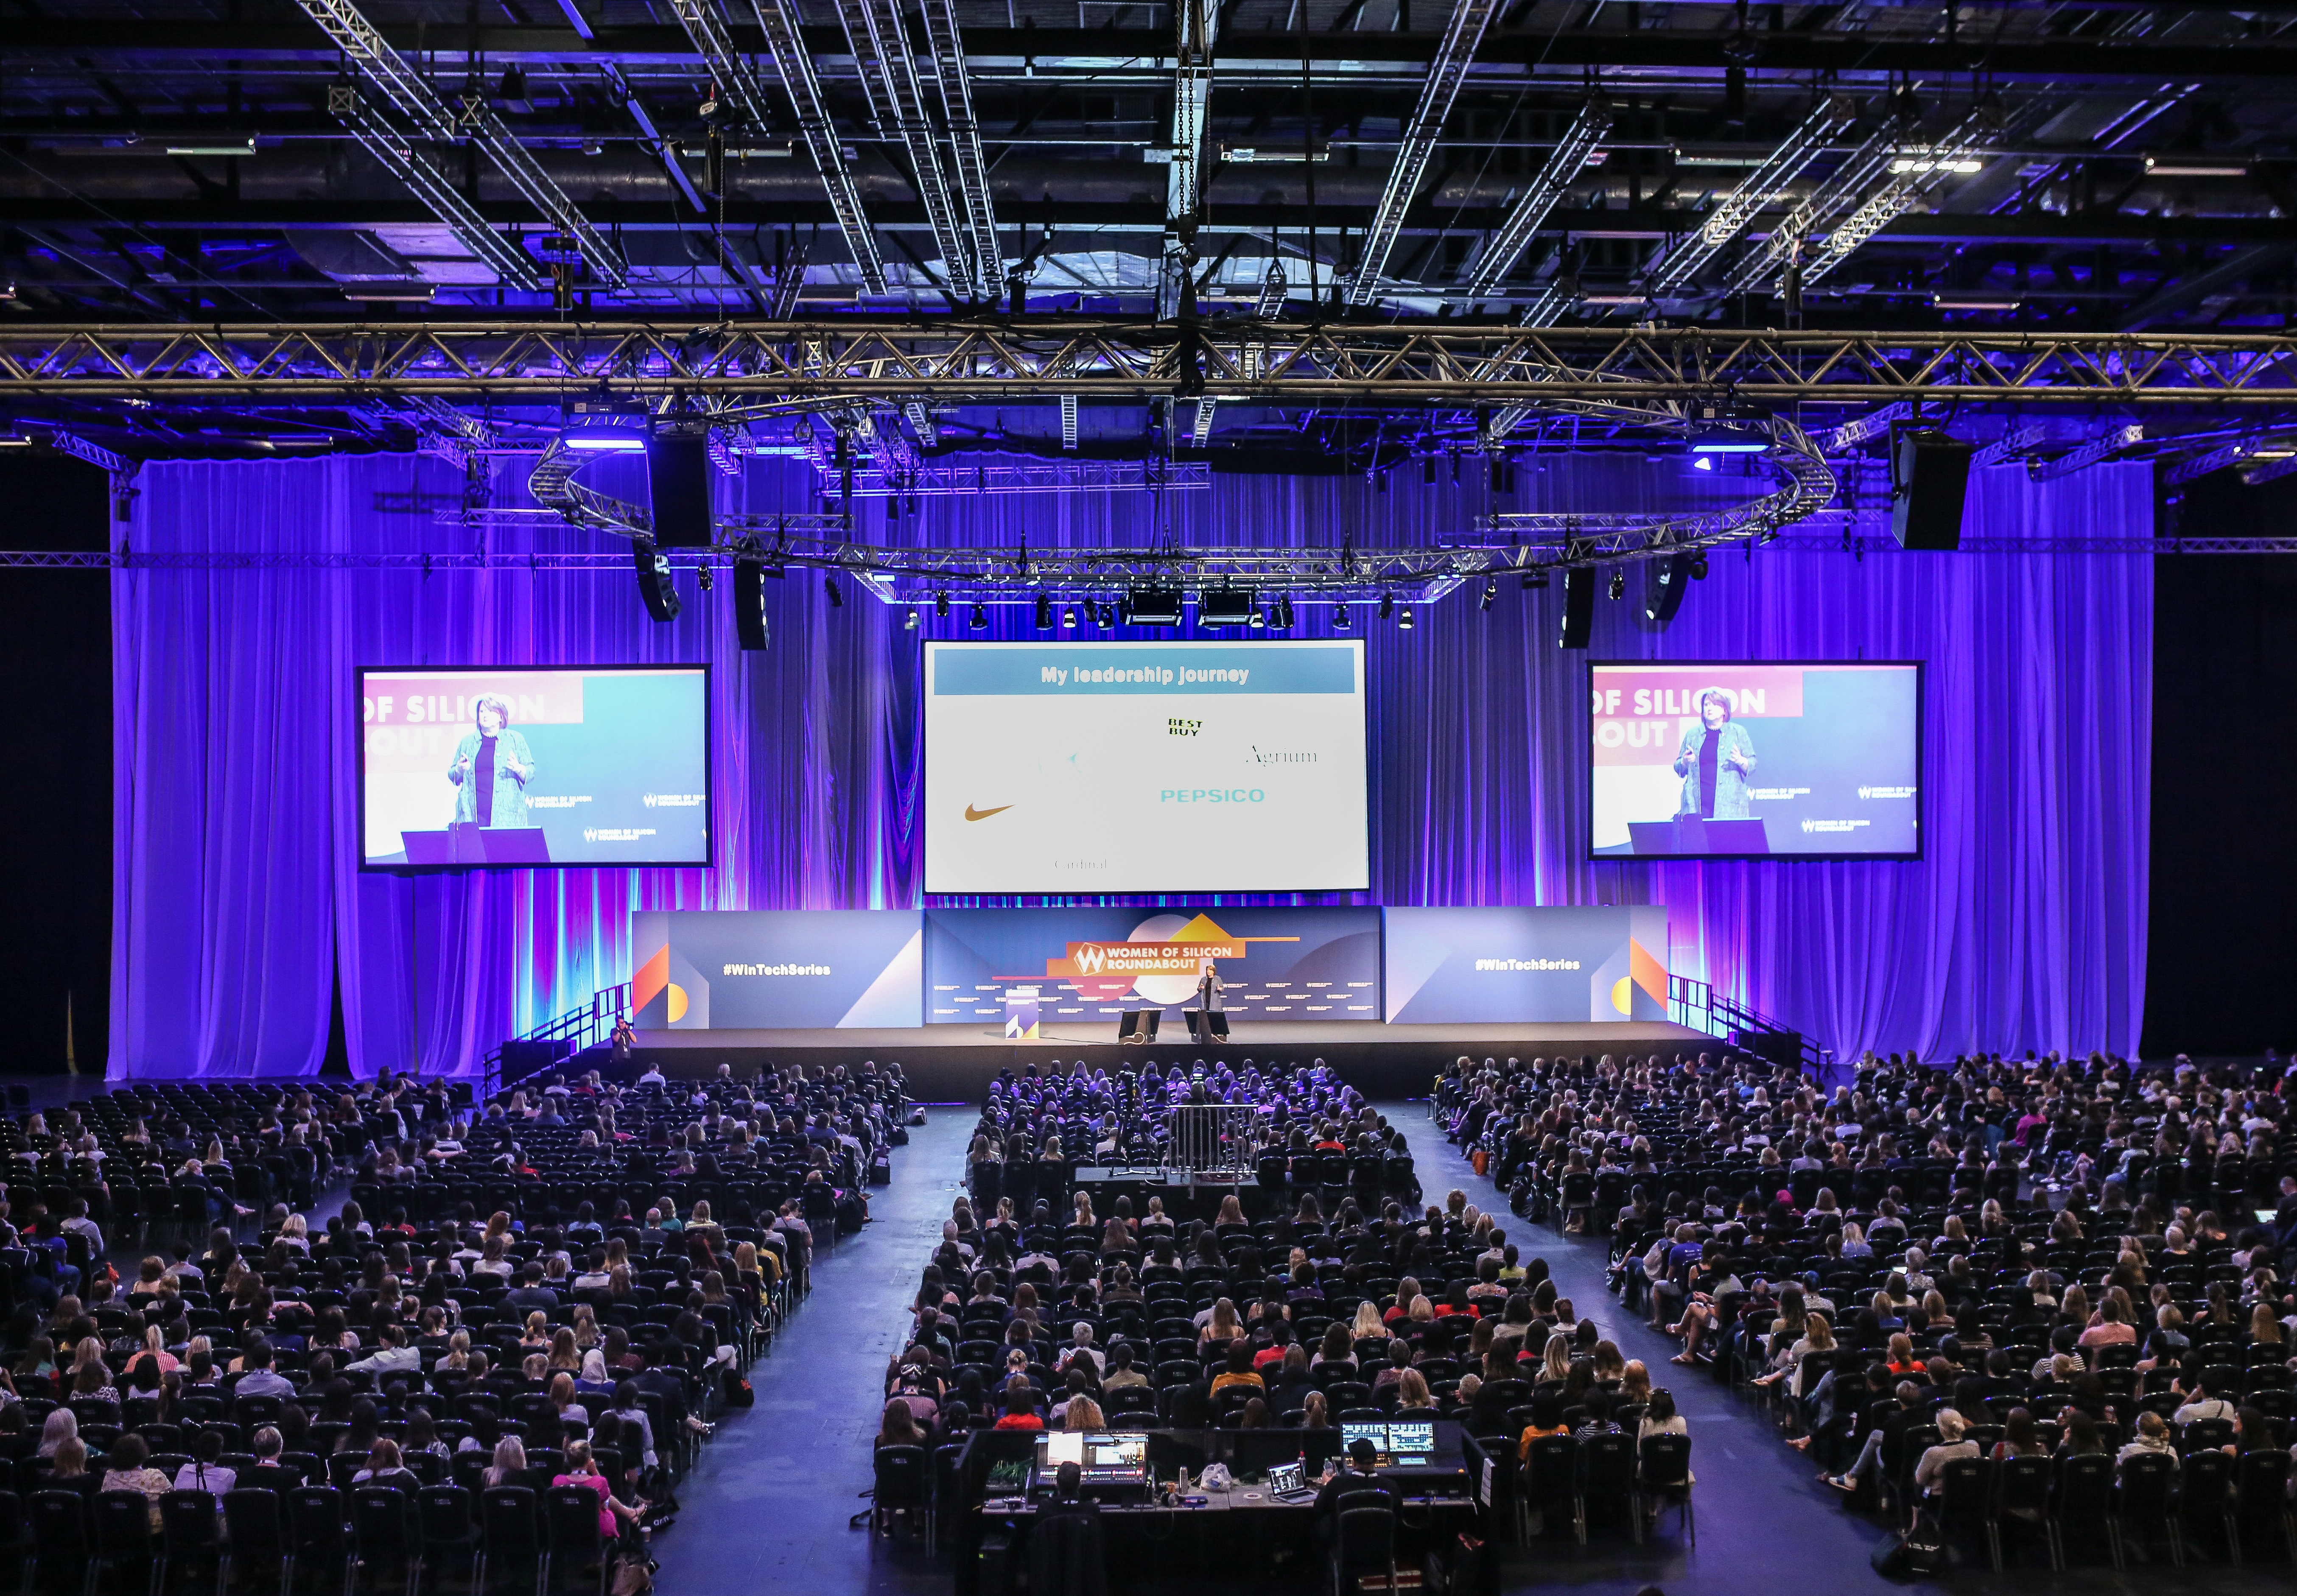 Women of Silicon Roundabout 2019 Note from the Producer